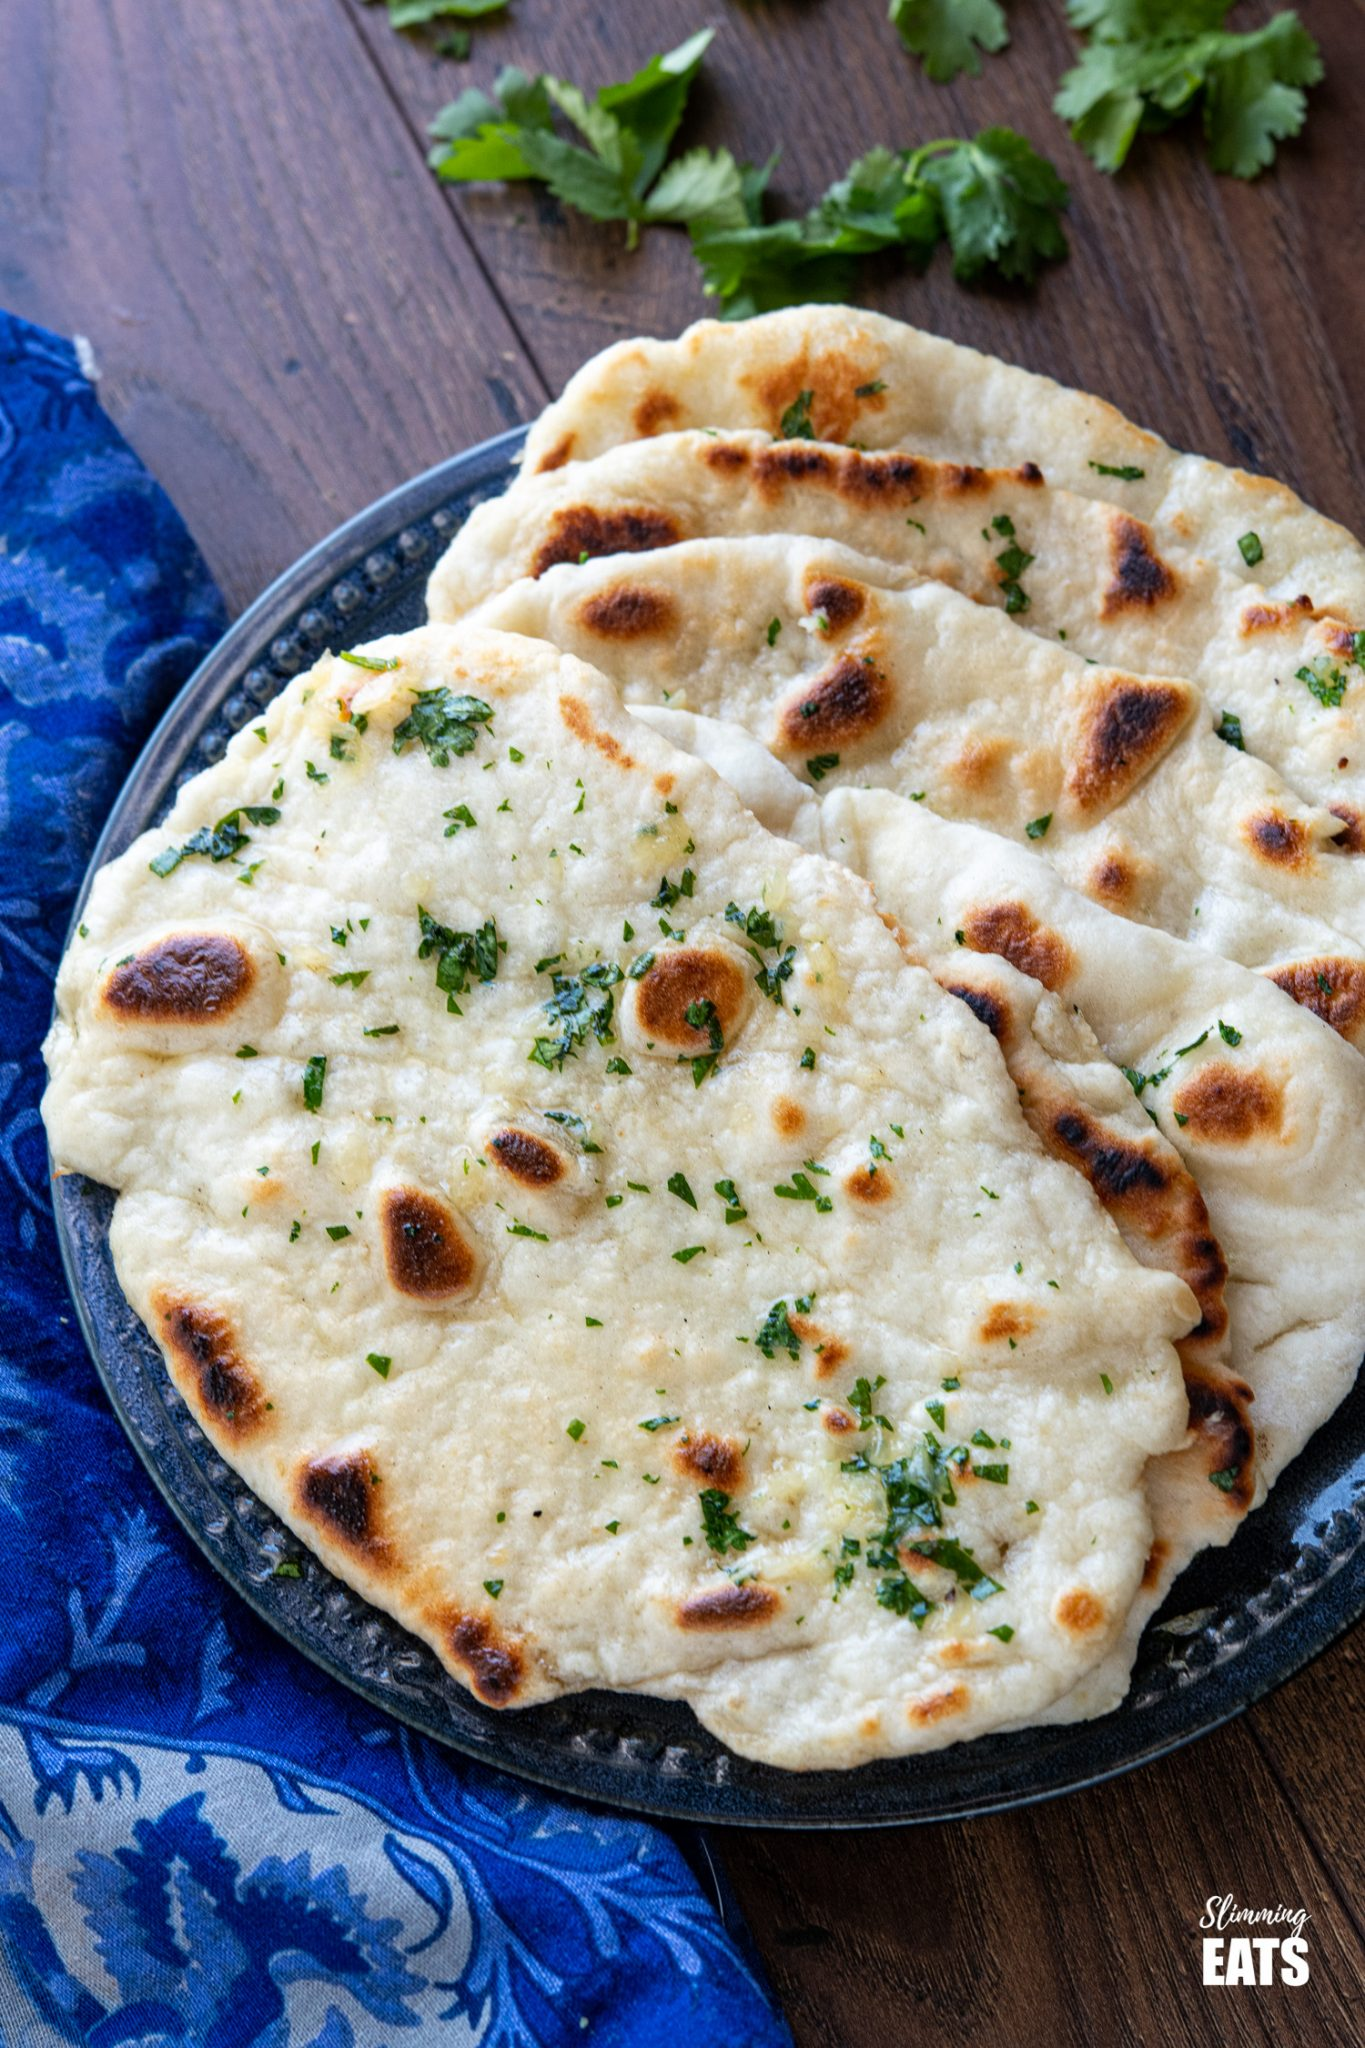 close up of Garlic Greek Yoghurt Naan Bread on dark blue plate with scattered cilantro